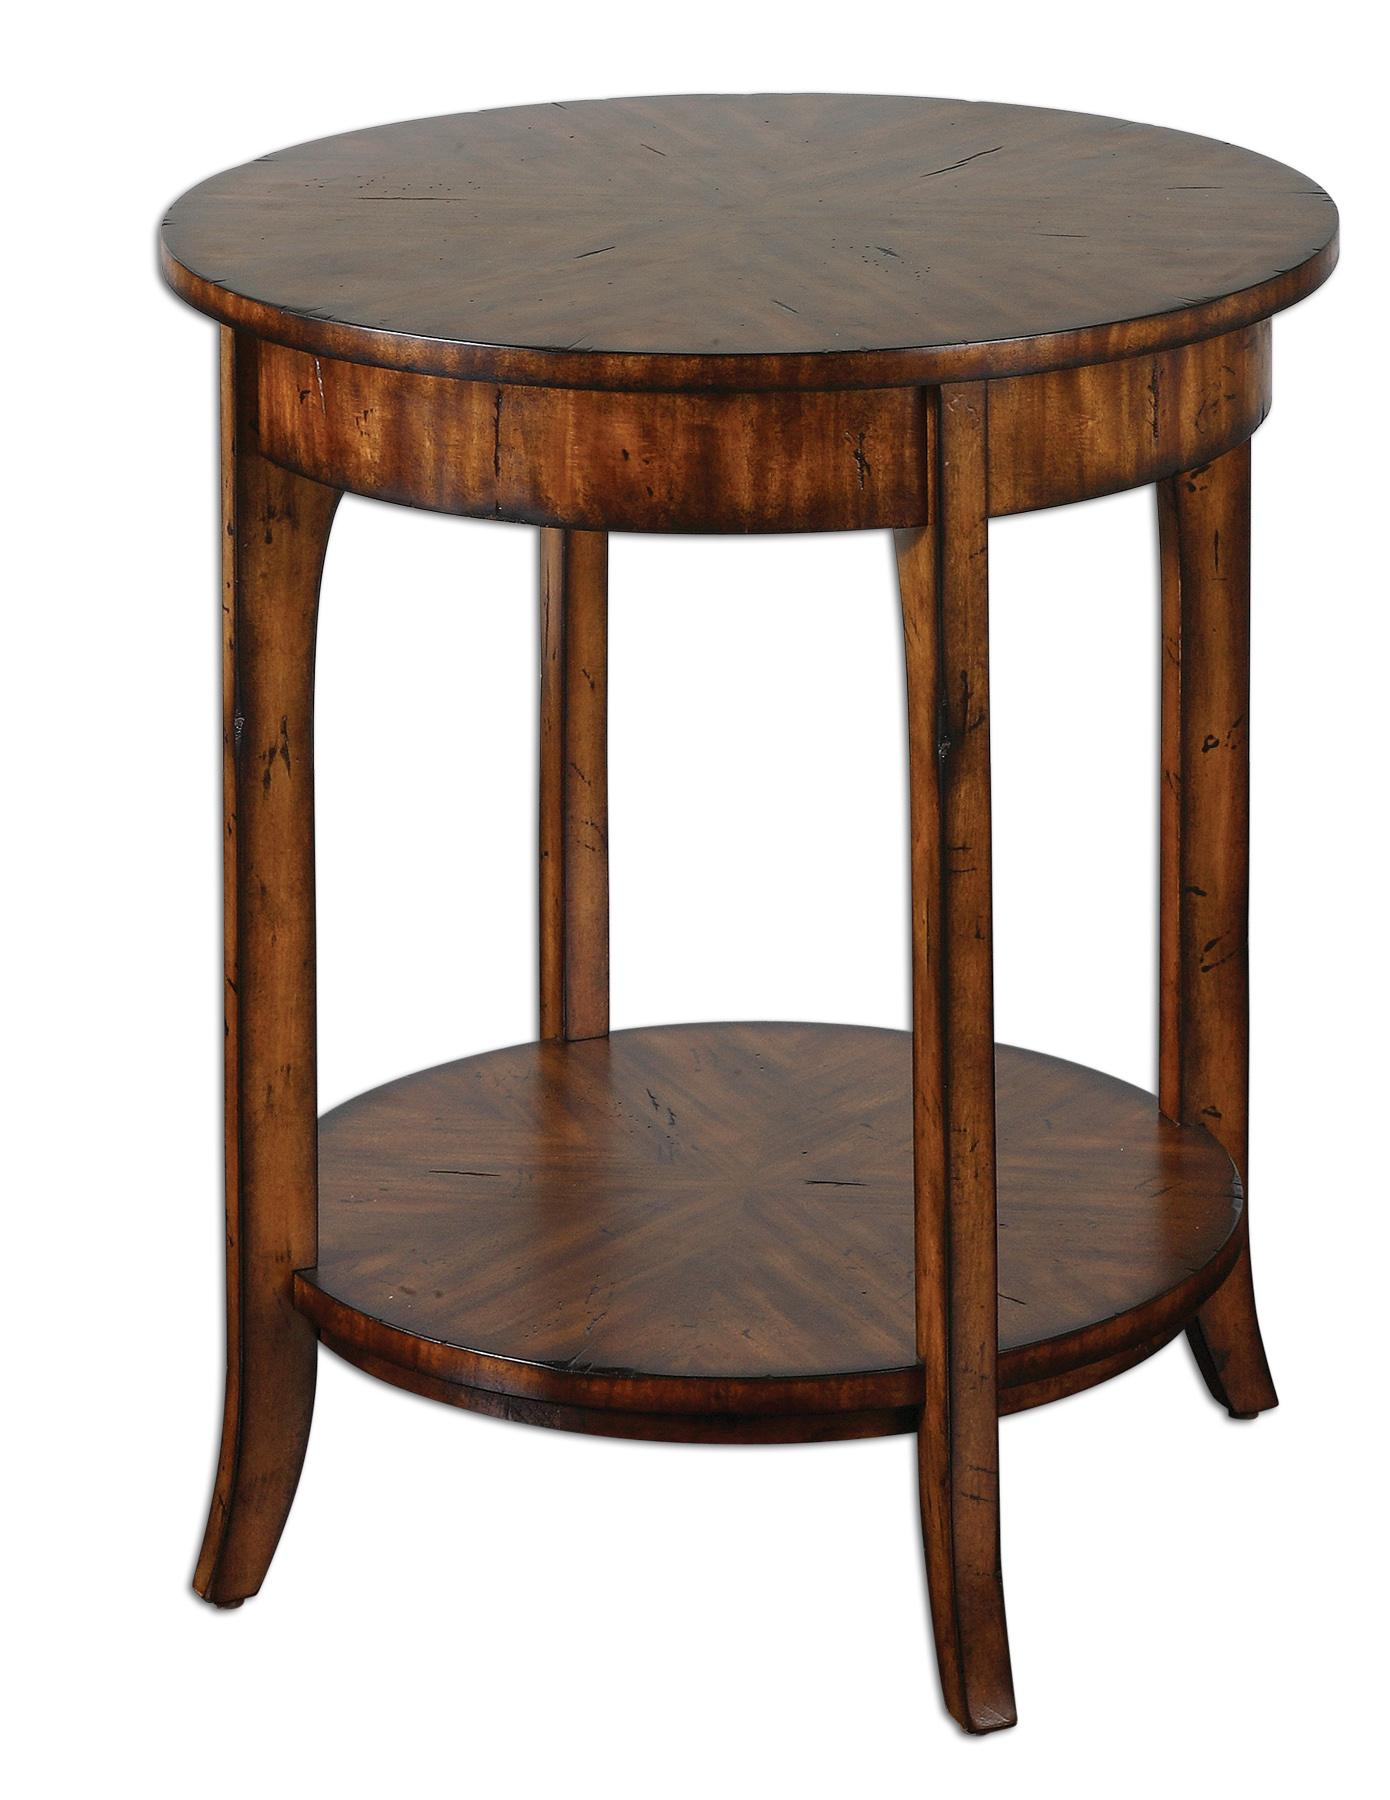 Accent Furniture - Occasional Tables Carmel Lamp Table by Uttermost at Upper Room Home Furnishings